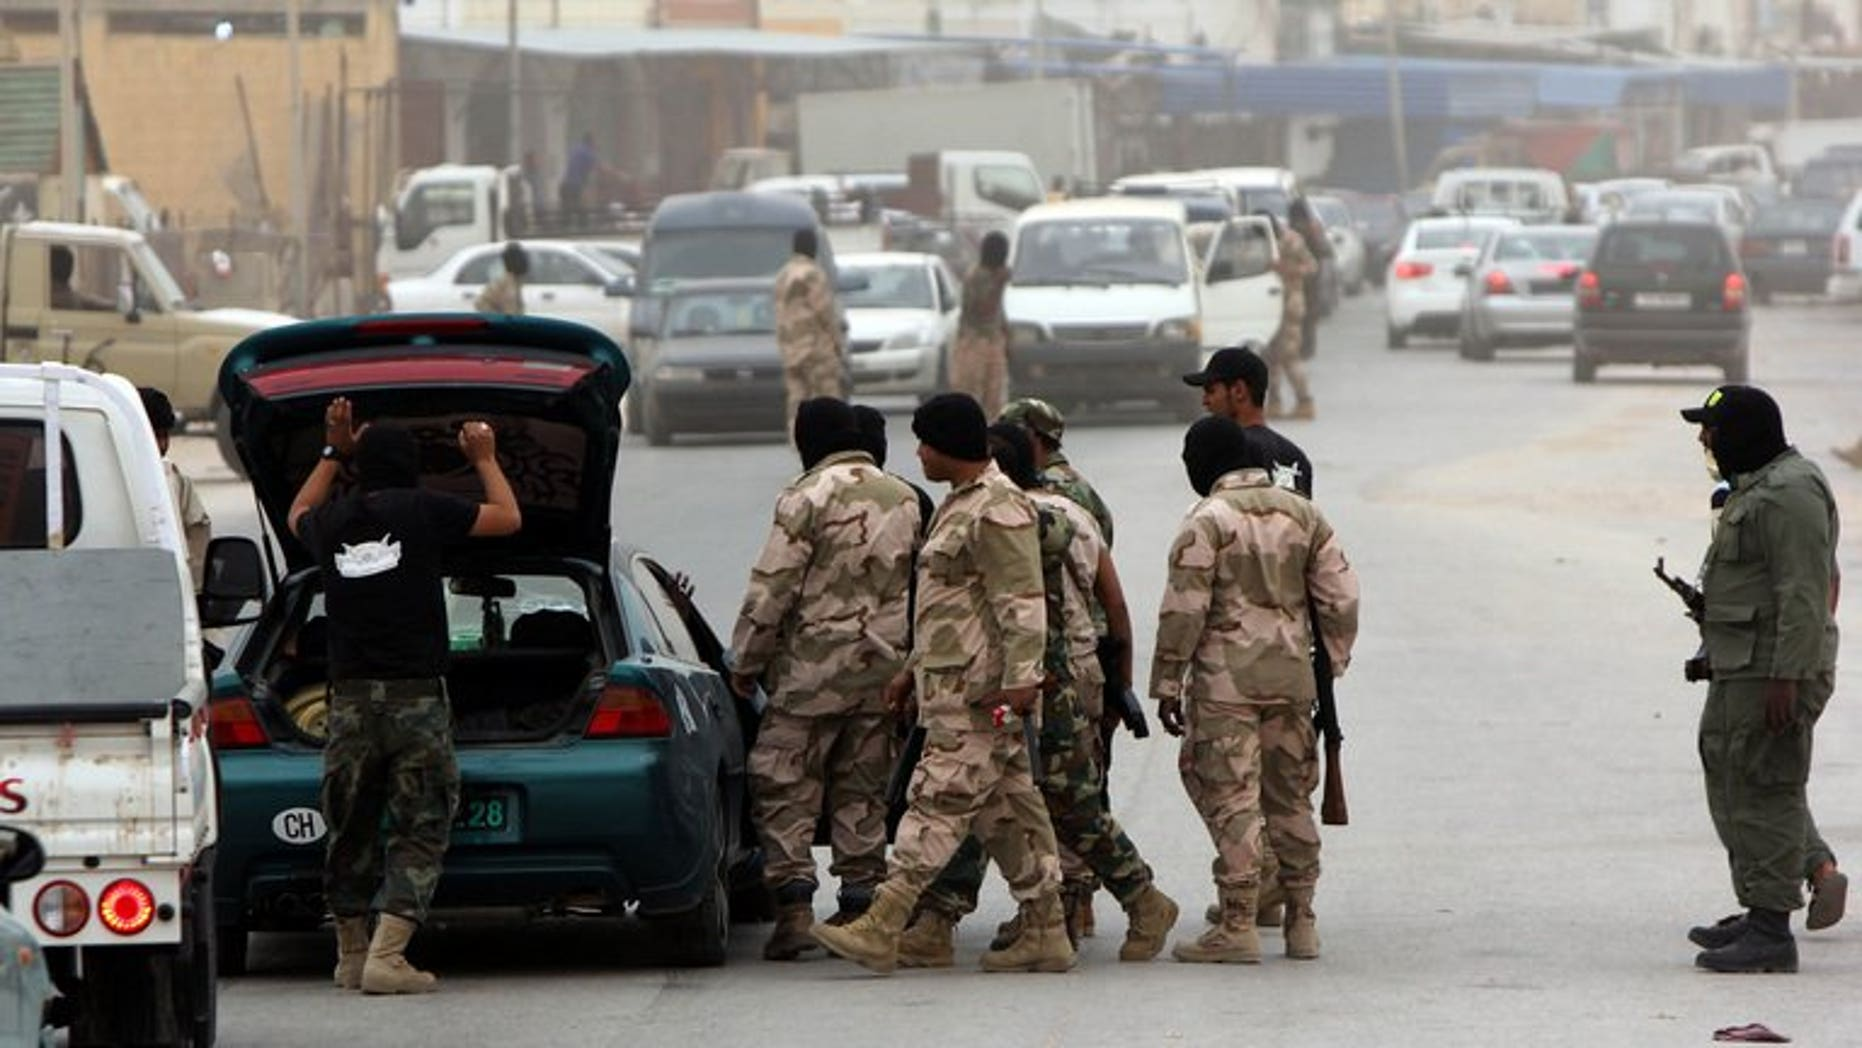 Libyan security force officers search a car at a checkpoint on May 16, 2013 in Benghazi. Some 14,000 prisoners who escaped from various Libyan detention centres after the 2011 uprising against Moamer Kadhafi are still on the run, the interior minister said.